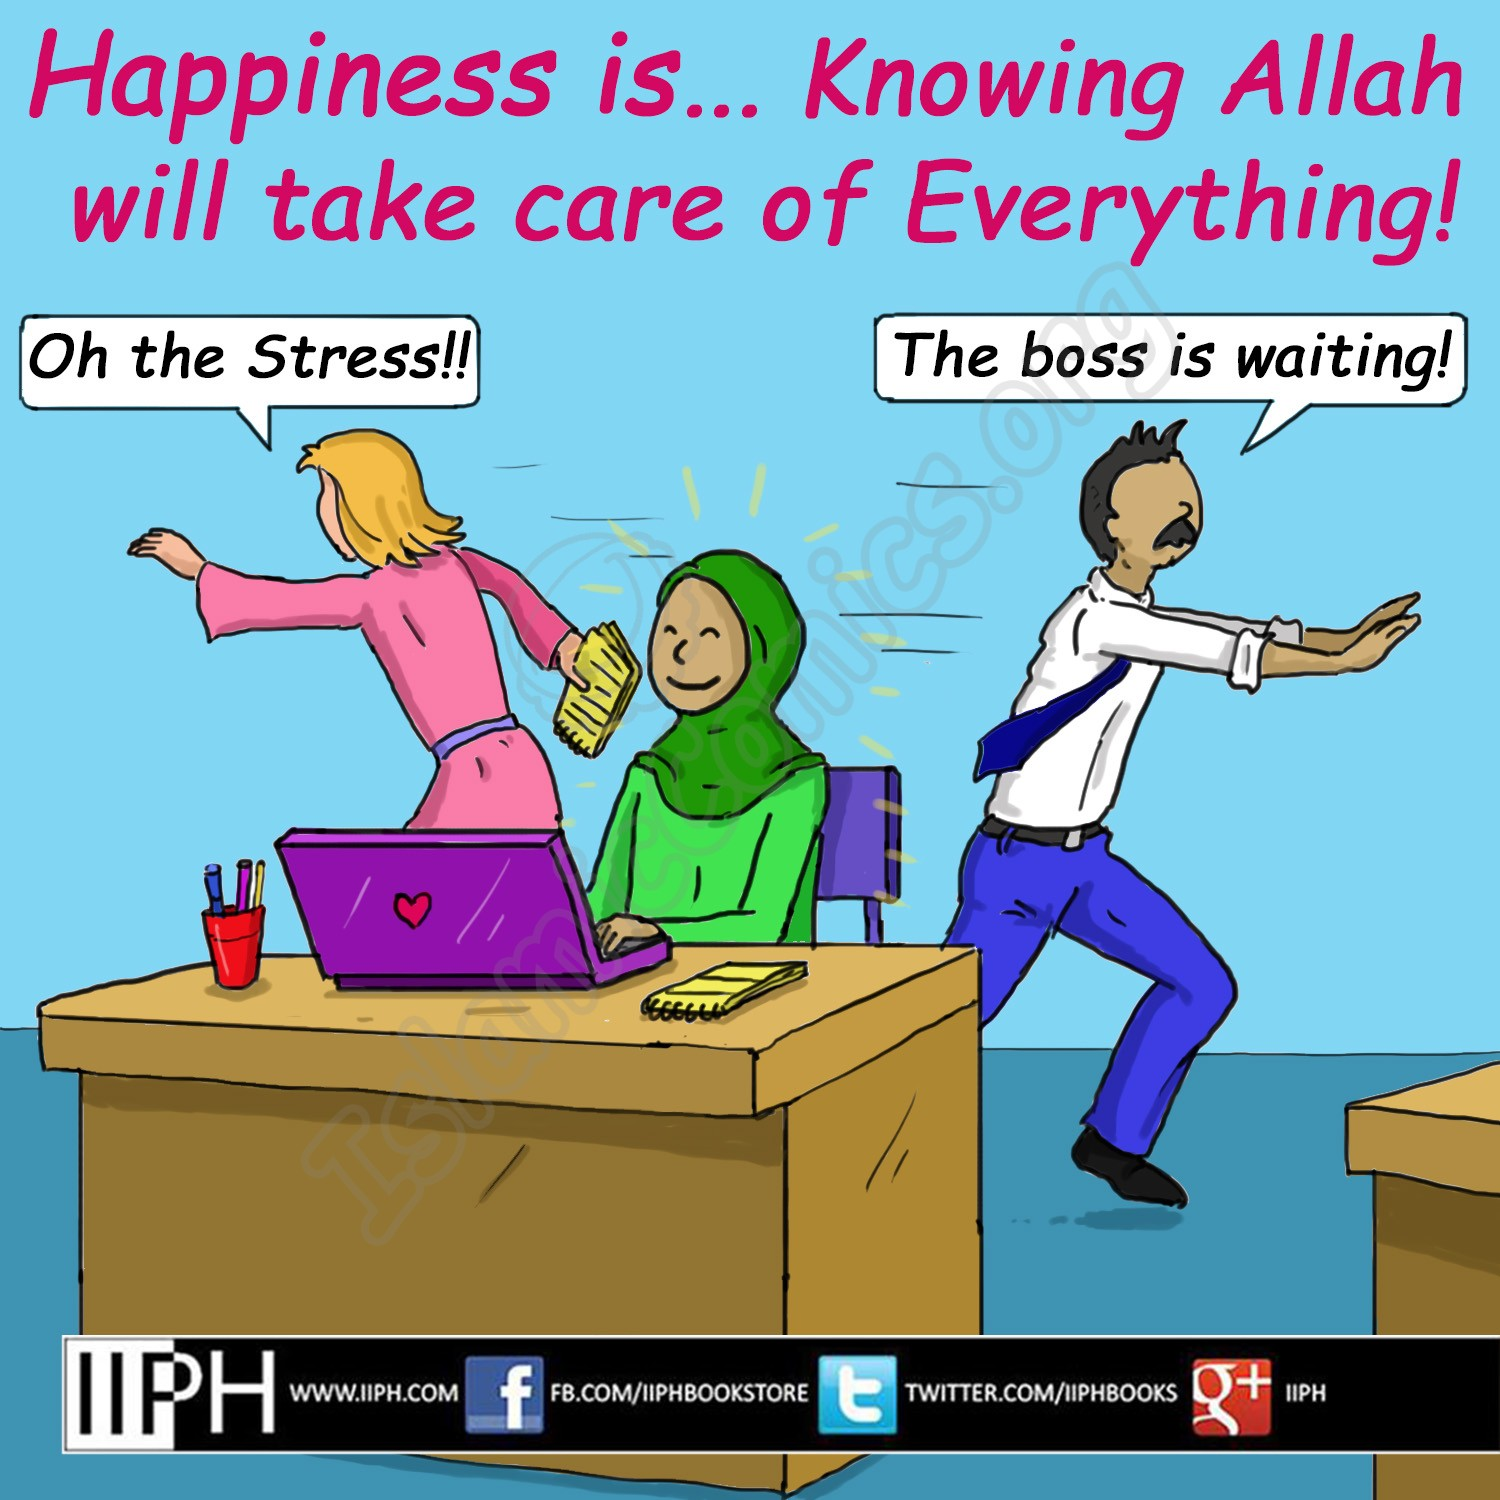 Happiness is knowning Allah takes care of everything - Islamic Illustrations (Islamic Comics)